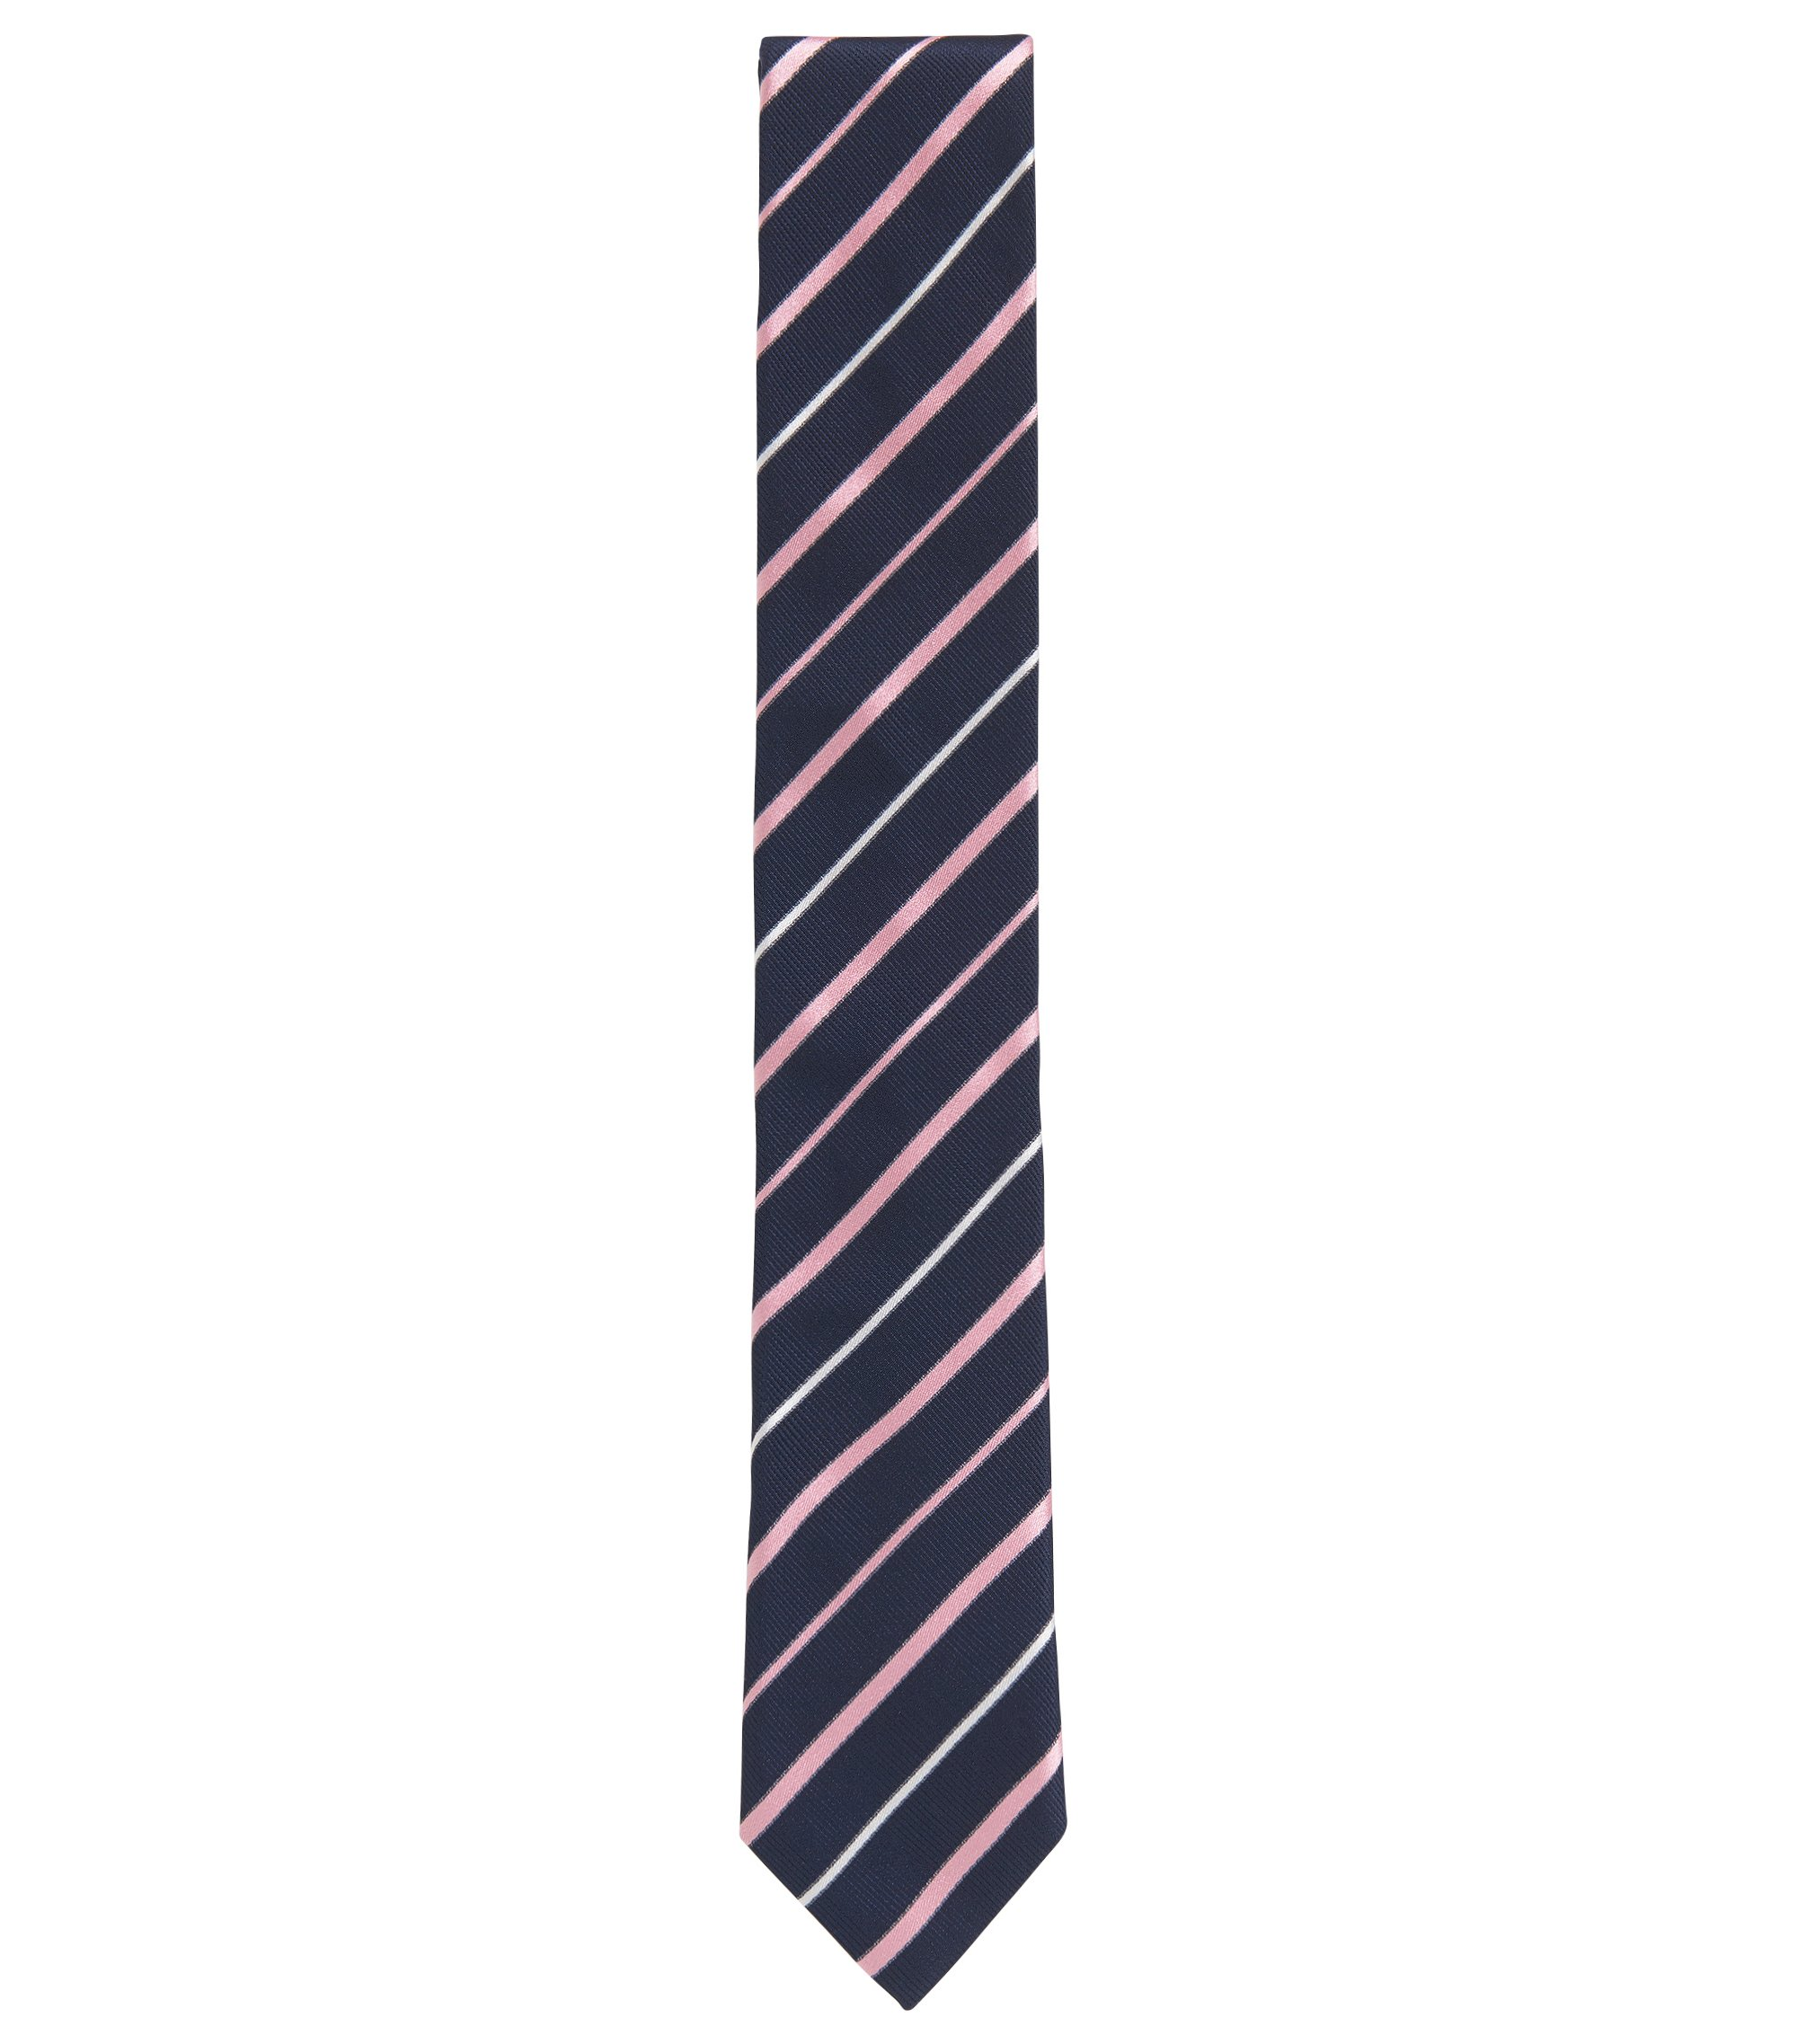 Striped Italian Silk Repp Slim Tie, light pink